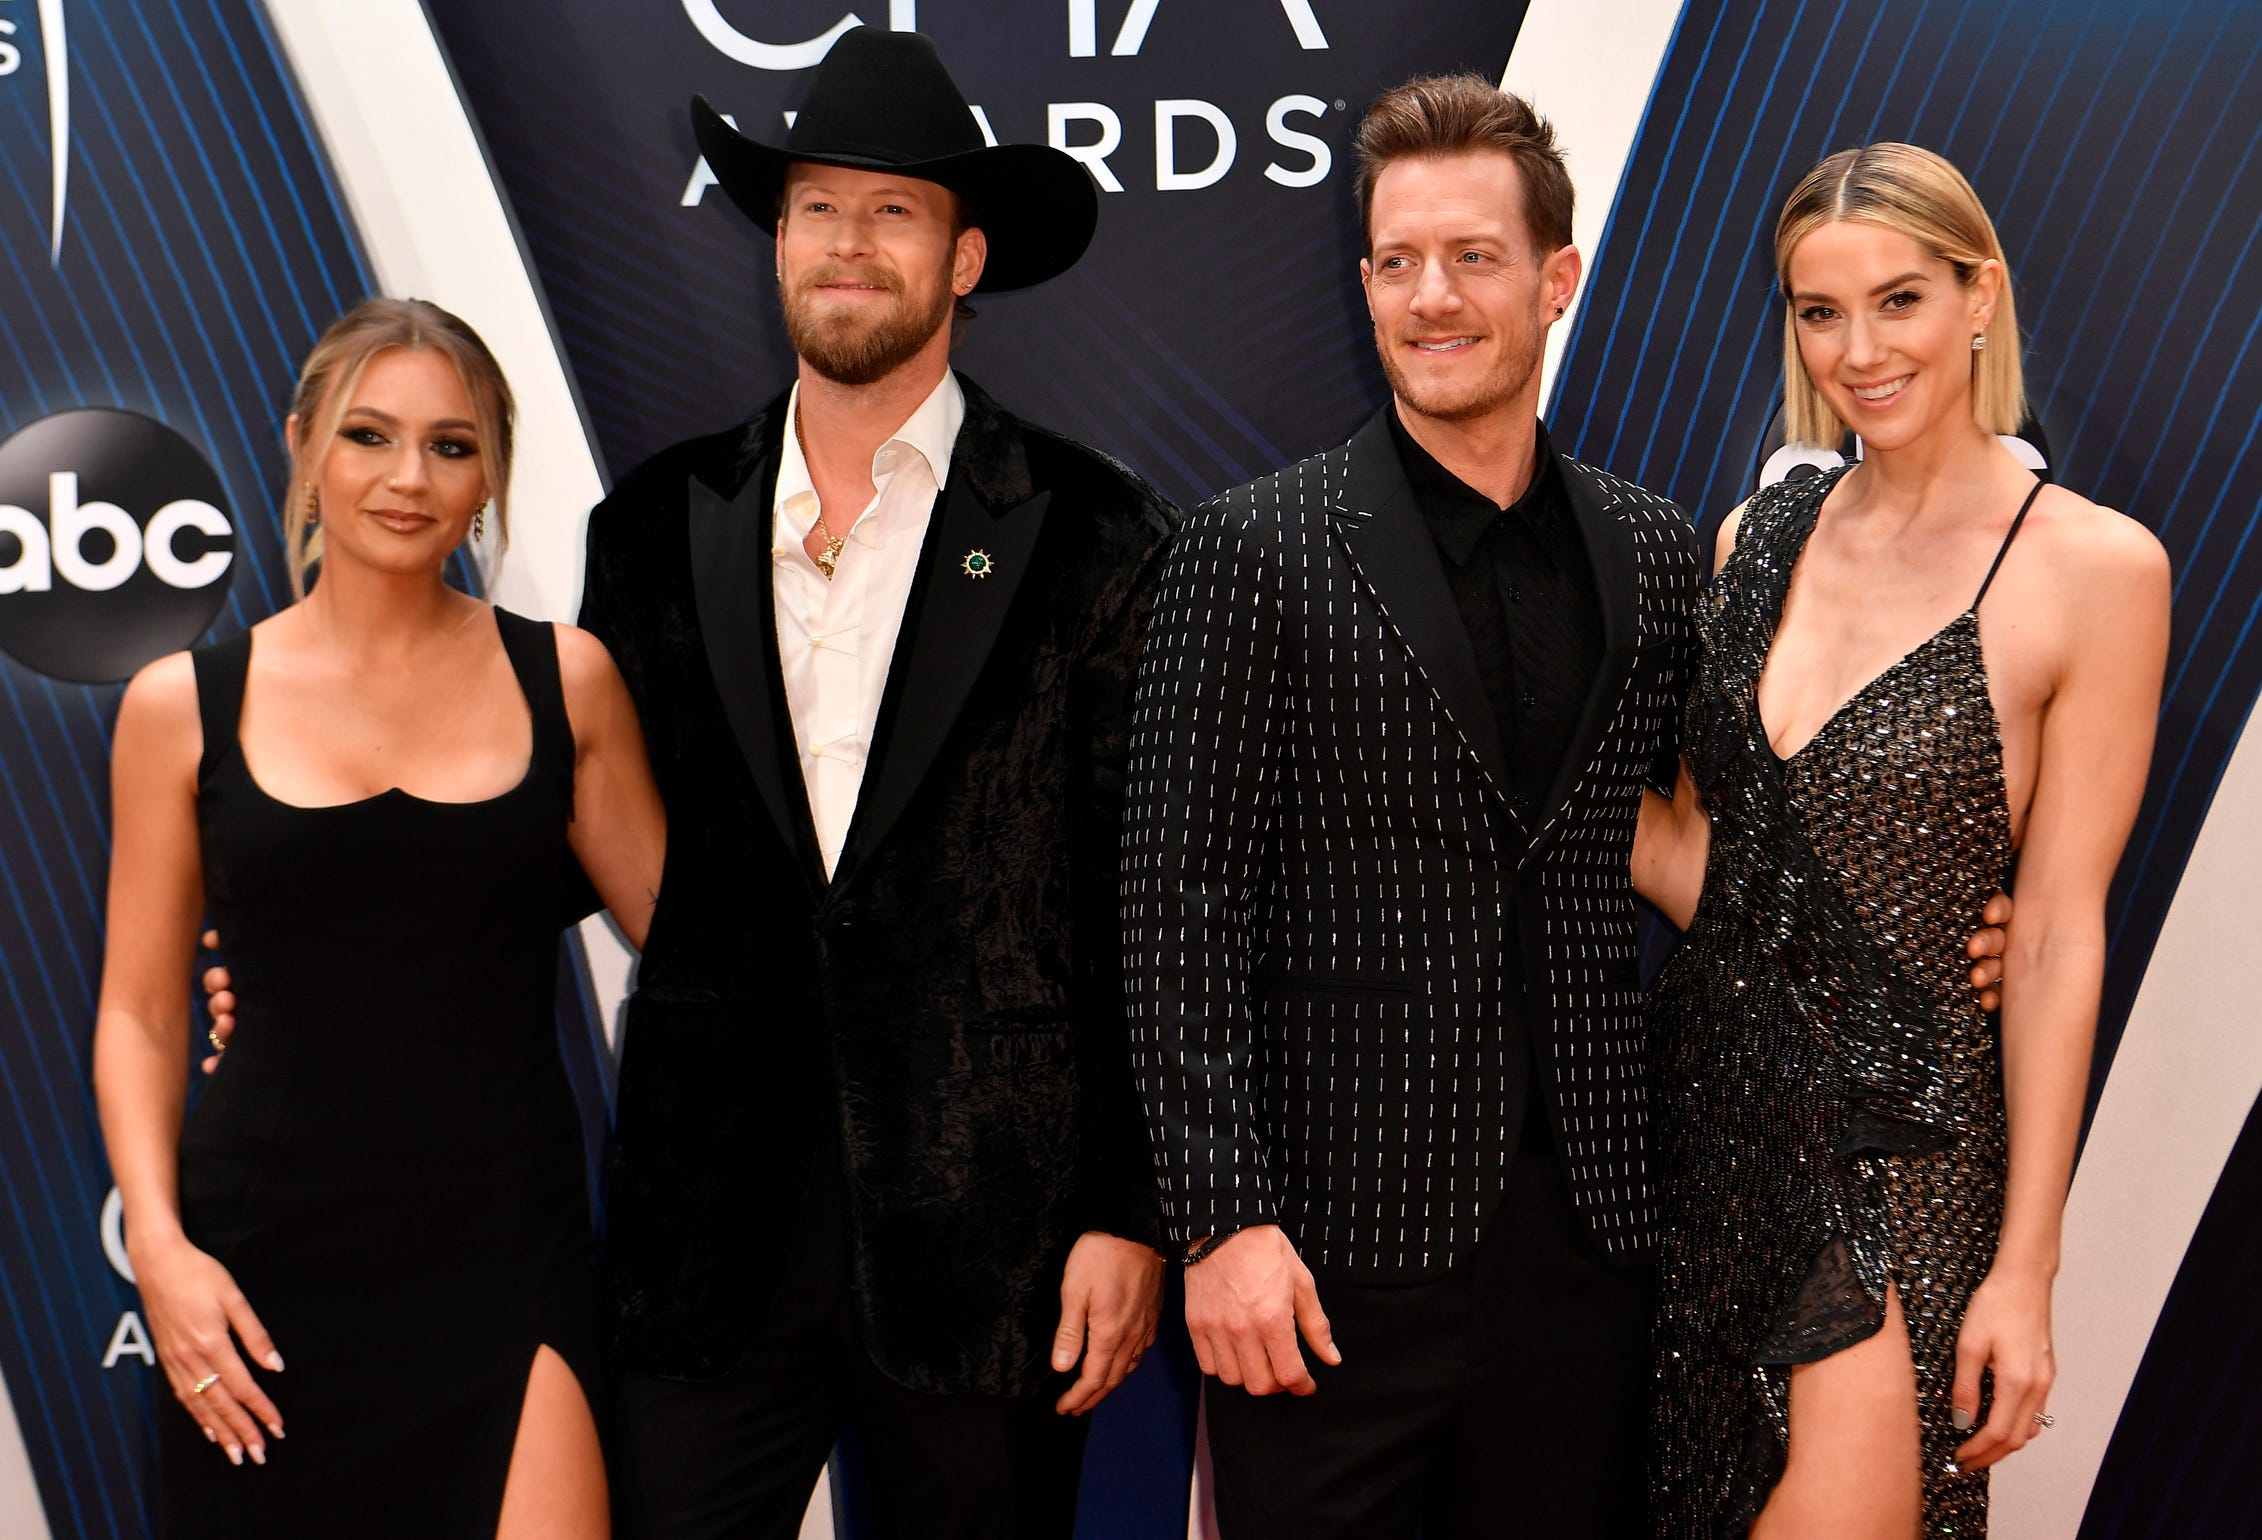 Country music's biggest stars turned up the fashion heat on the red carpet for the 52nd Annual Country Music Association Awards in Nashville. Click ahead to see the hottest looks.   Florida Georgia Line arrives  before the 52nd Annual CMA Awards at Bridgestone Arena.